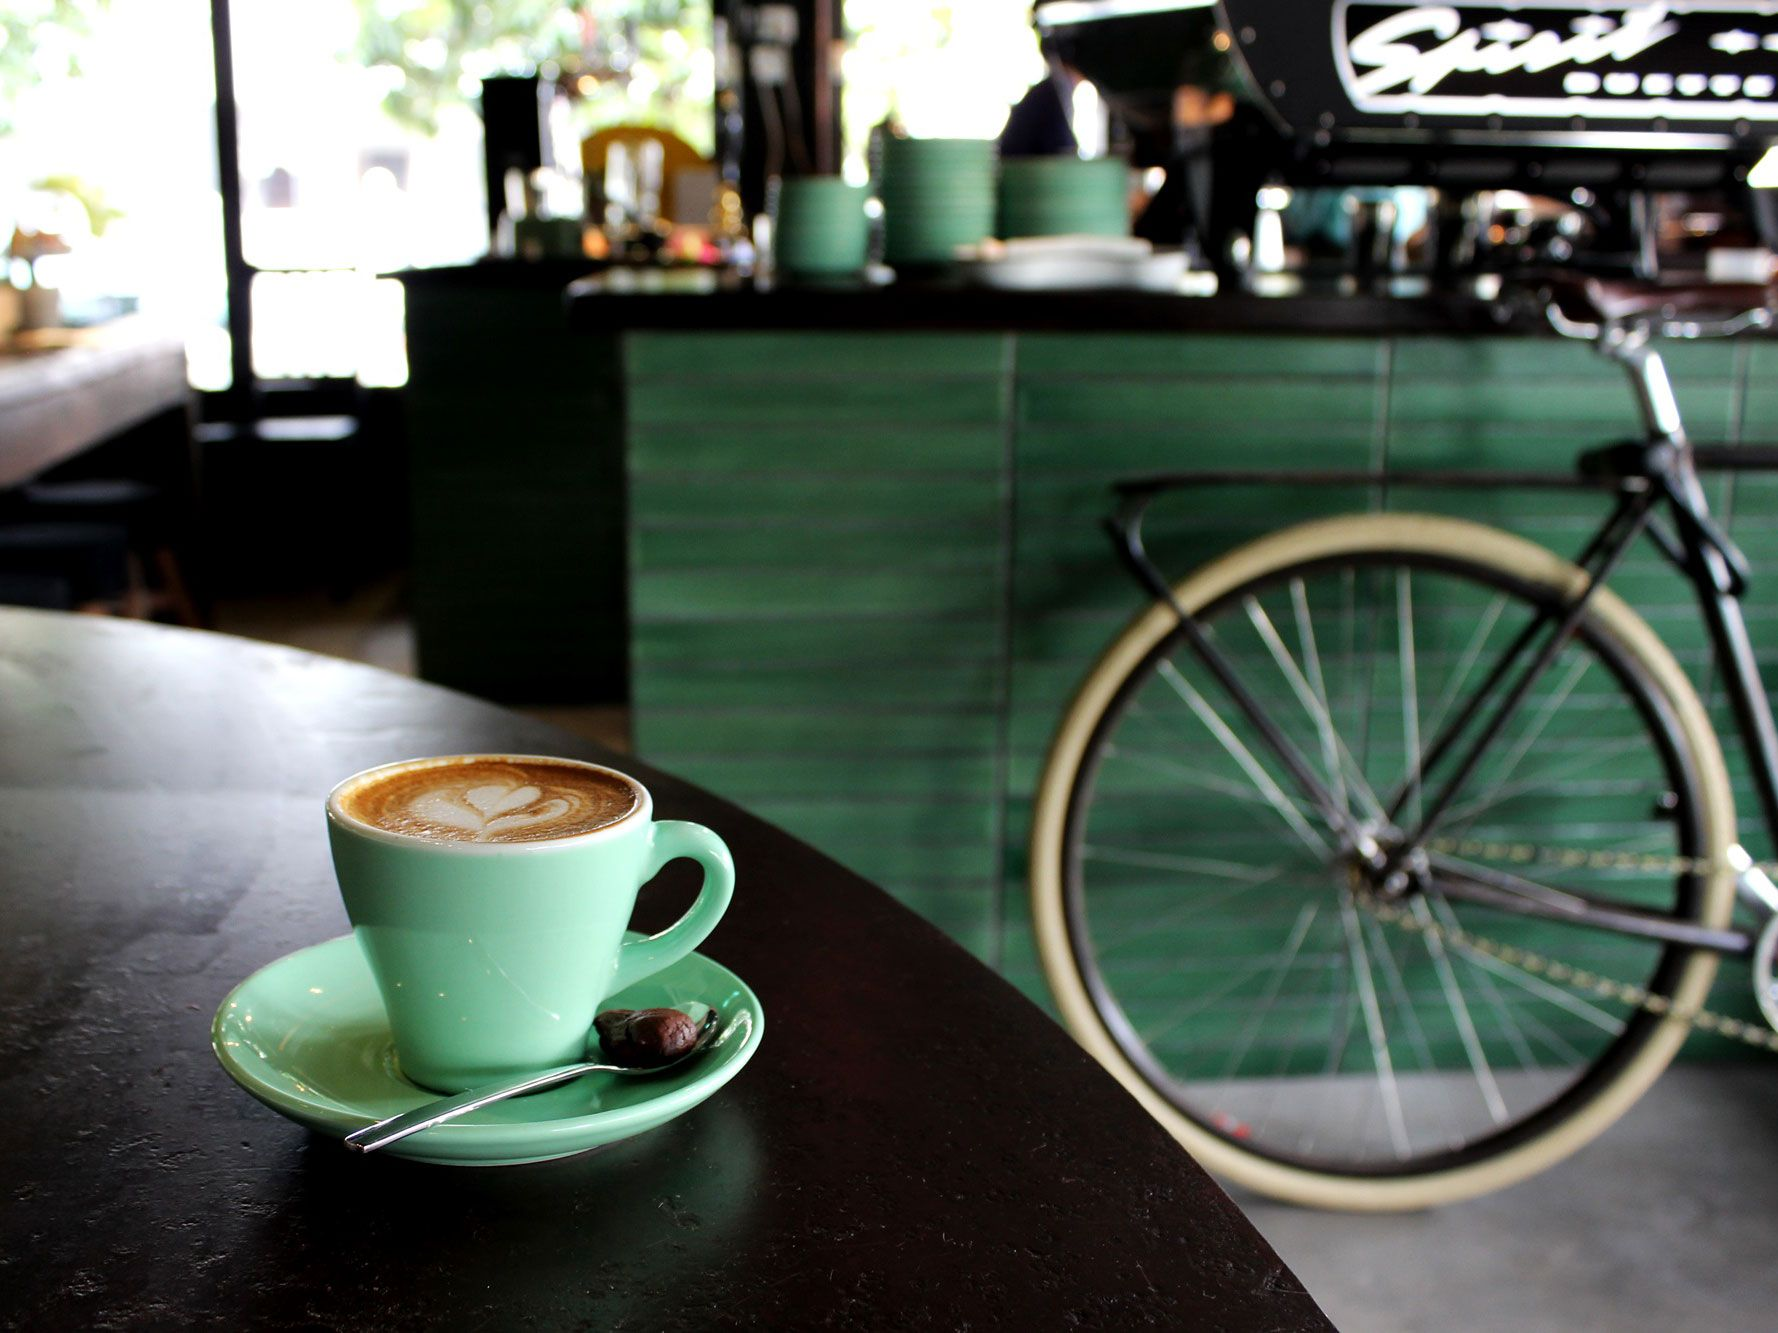 Coffee Culture And The Tradition Of Cafe Hopping Is Thriving In Singapore So Take In Your Daily Dose Of Caffeine In One Of These St Cool Cafe Coffee Shop Cafe